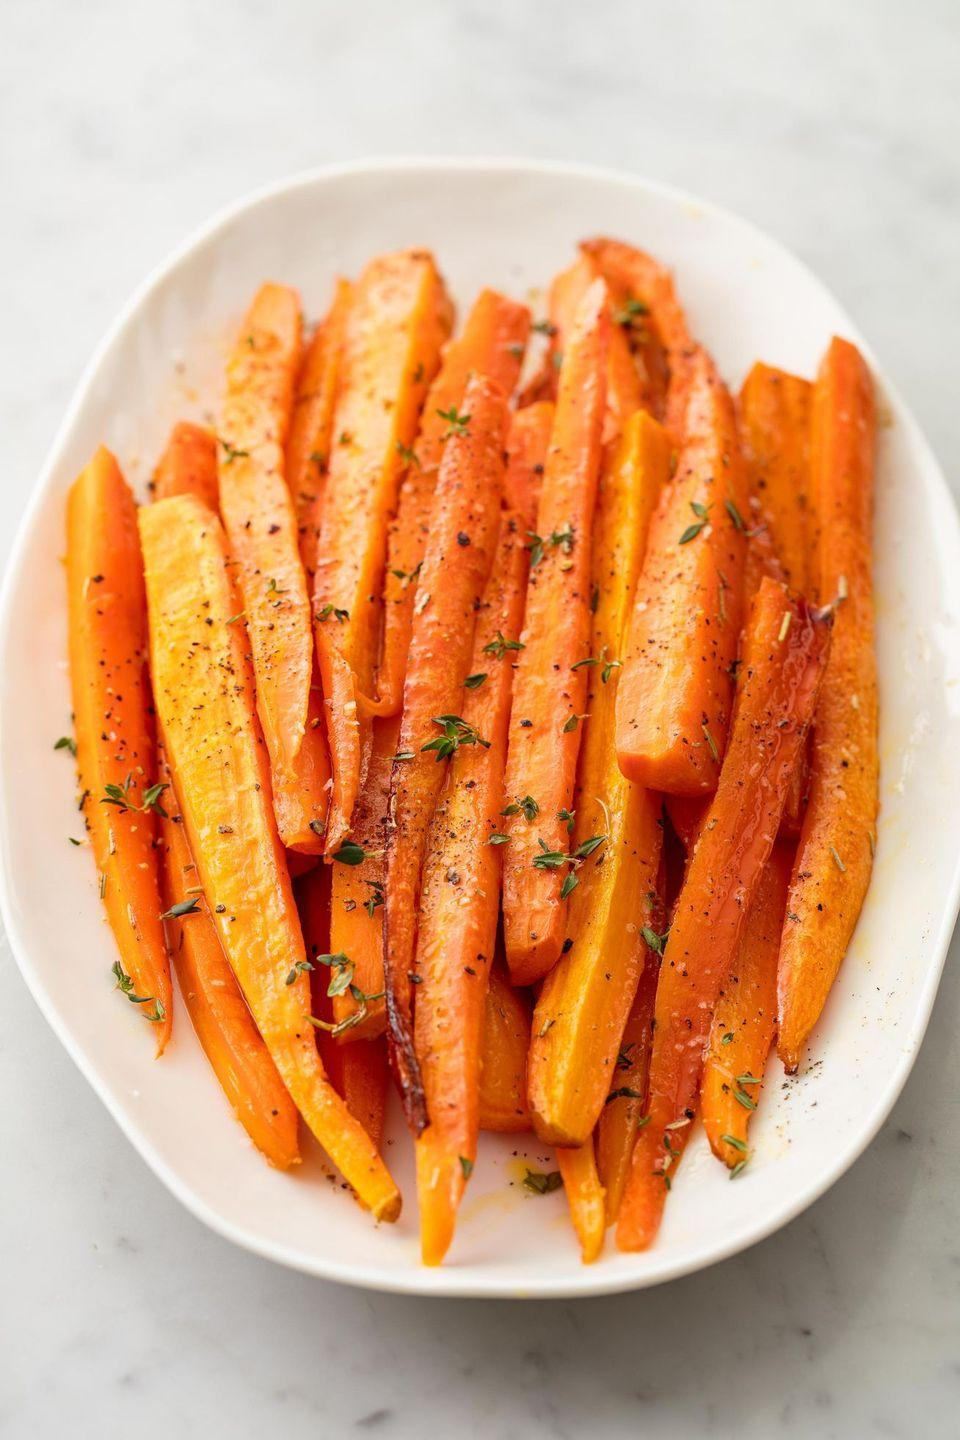 """<p>Just halve the recipe if you're not down for leftovers!</p><p>Get the recipe from <a href=""""https://www.delish.com/cooking/recipe-ideas/recipes/a58381/honey-glazed-carrots-recipe/"""" rel=""""nofollow noopener"""" target=""""_blank"""" data-ylk=""""slk:Delish"""" class=""""link rapid-noclick-resp"""">Delish</a>.</p>"""